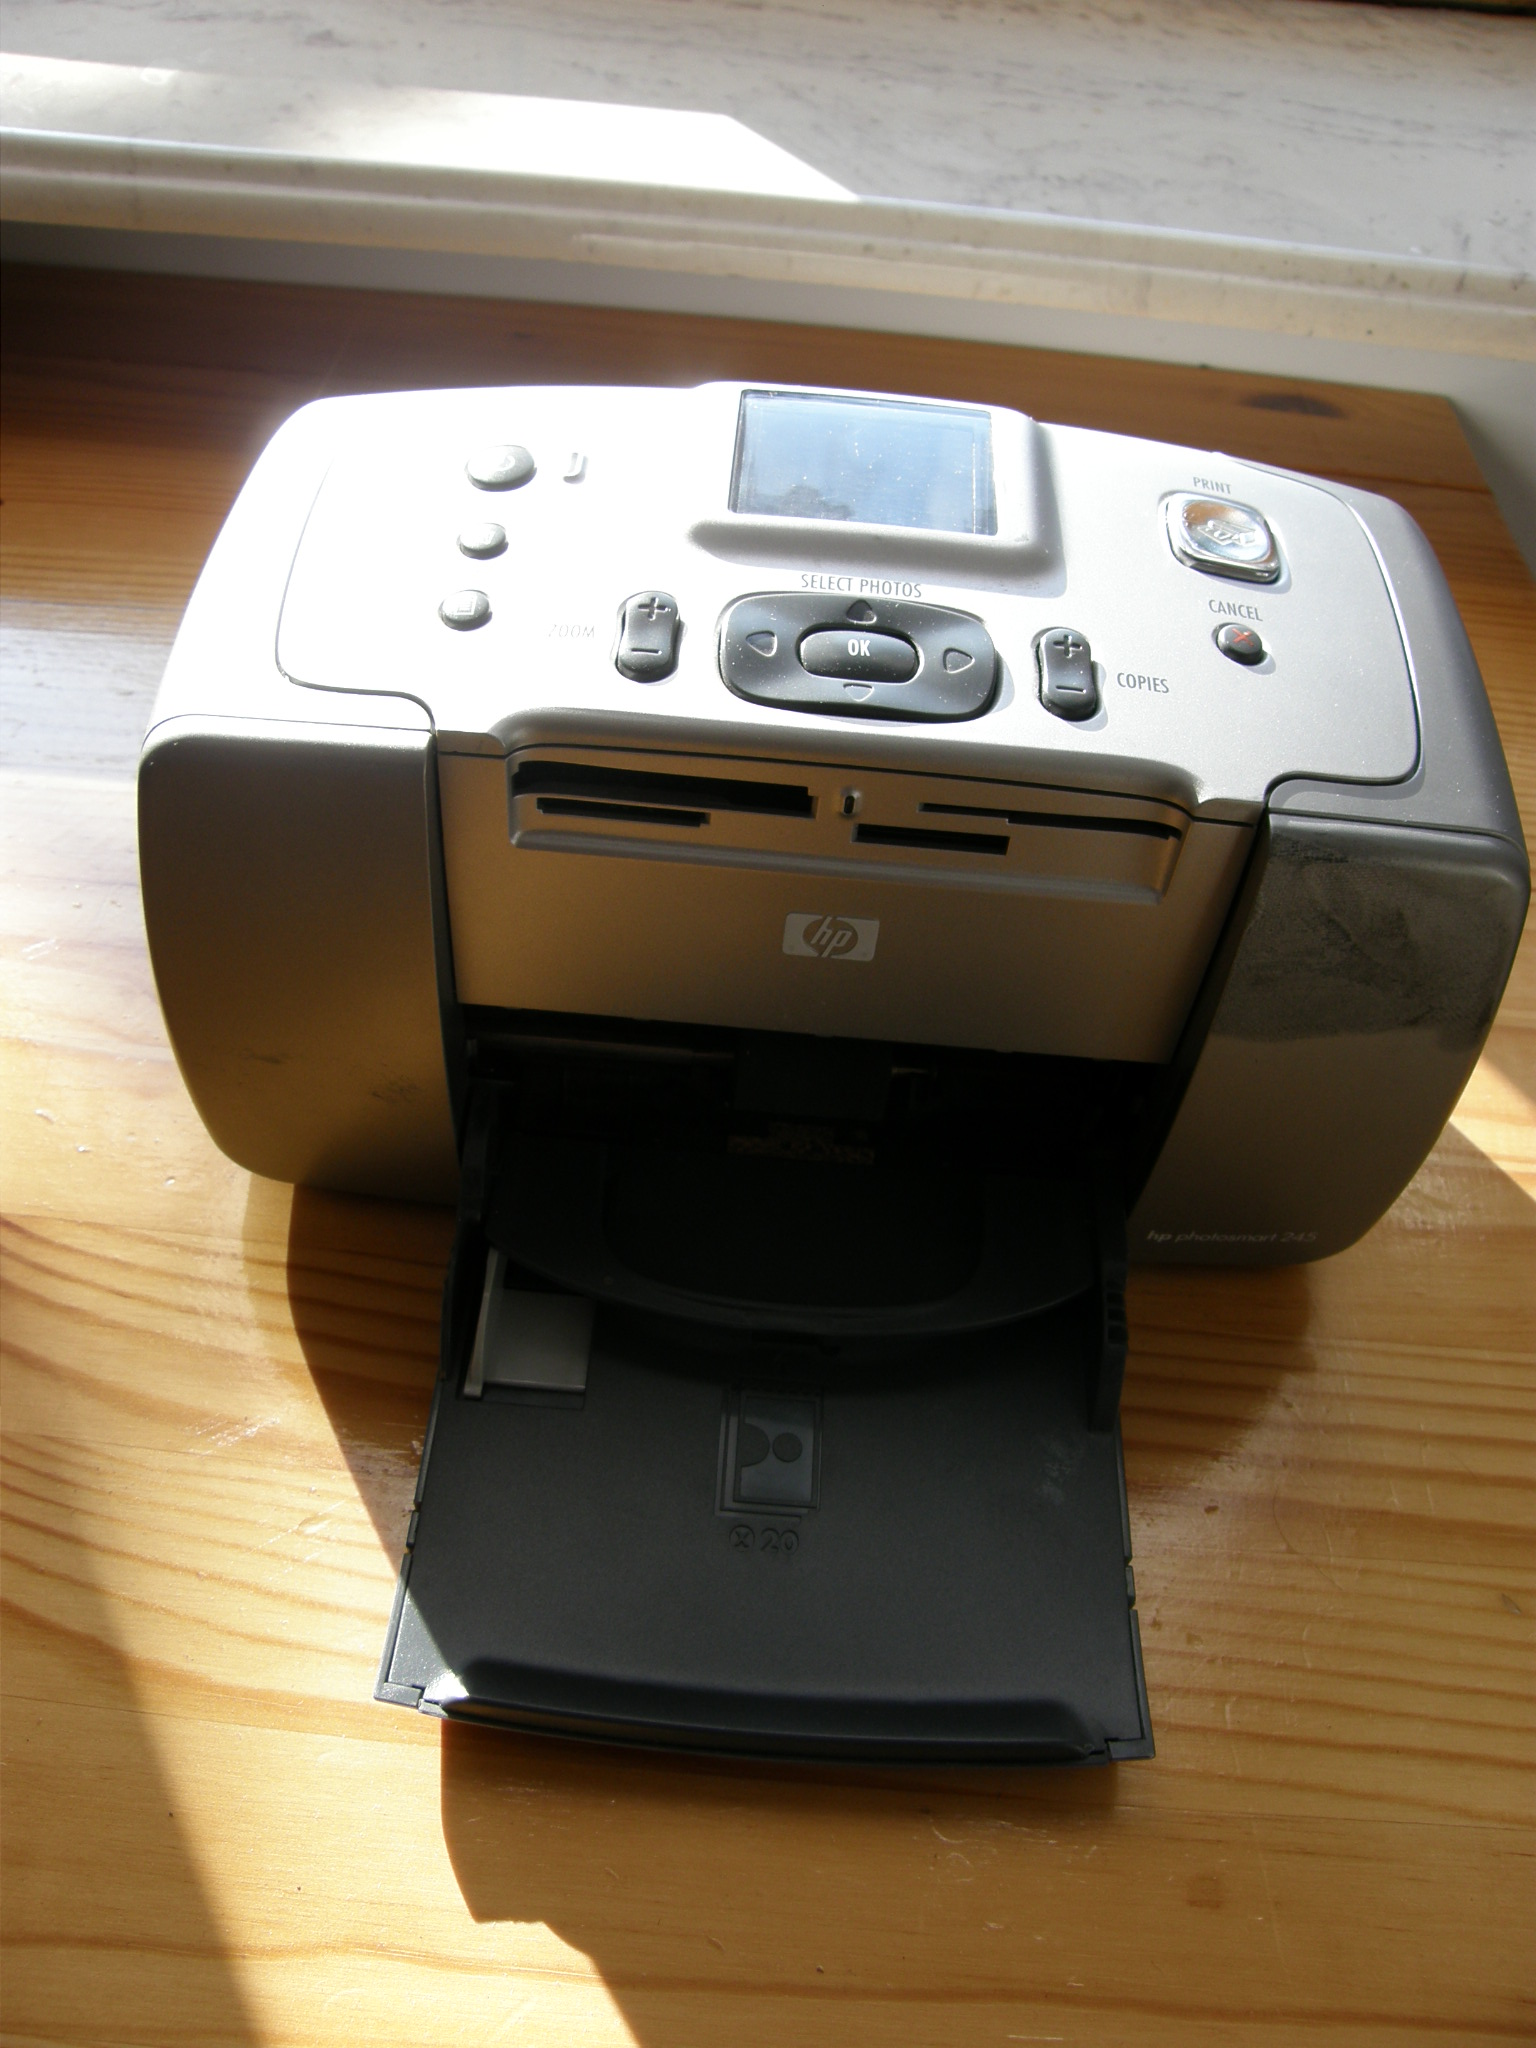 Laserjet print drivers for windows xp - download driver FOUND